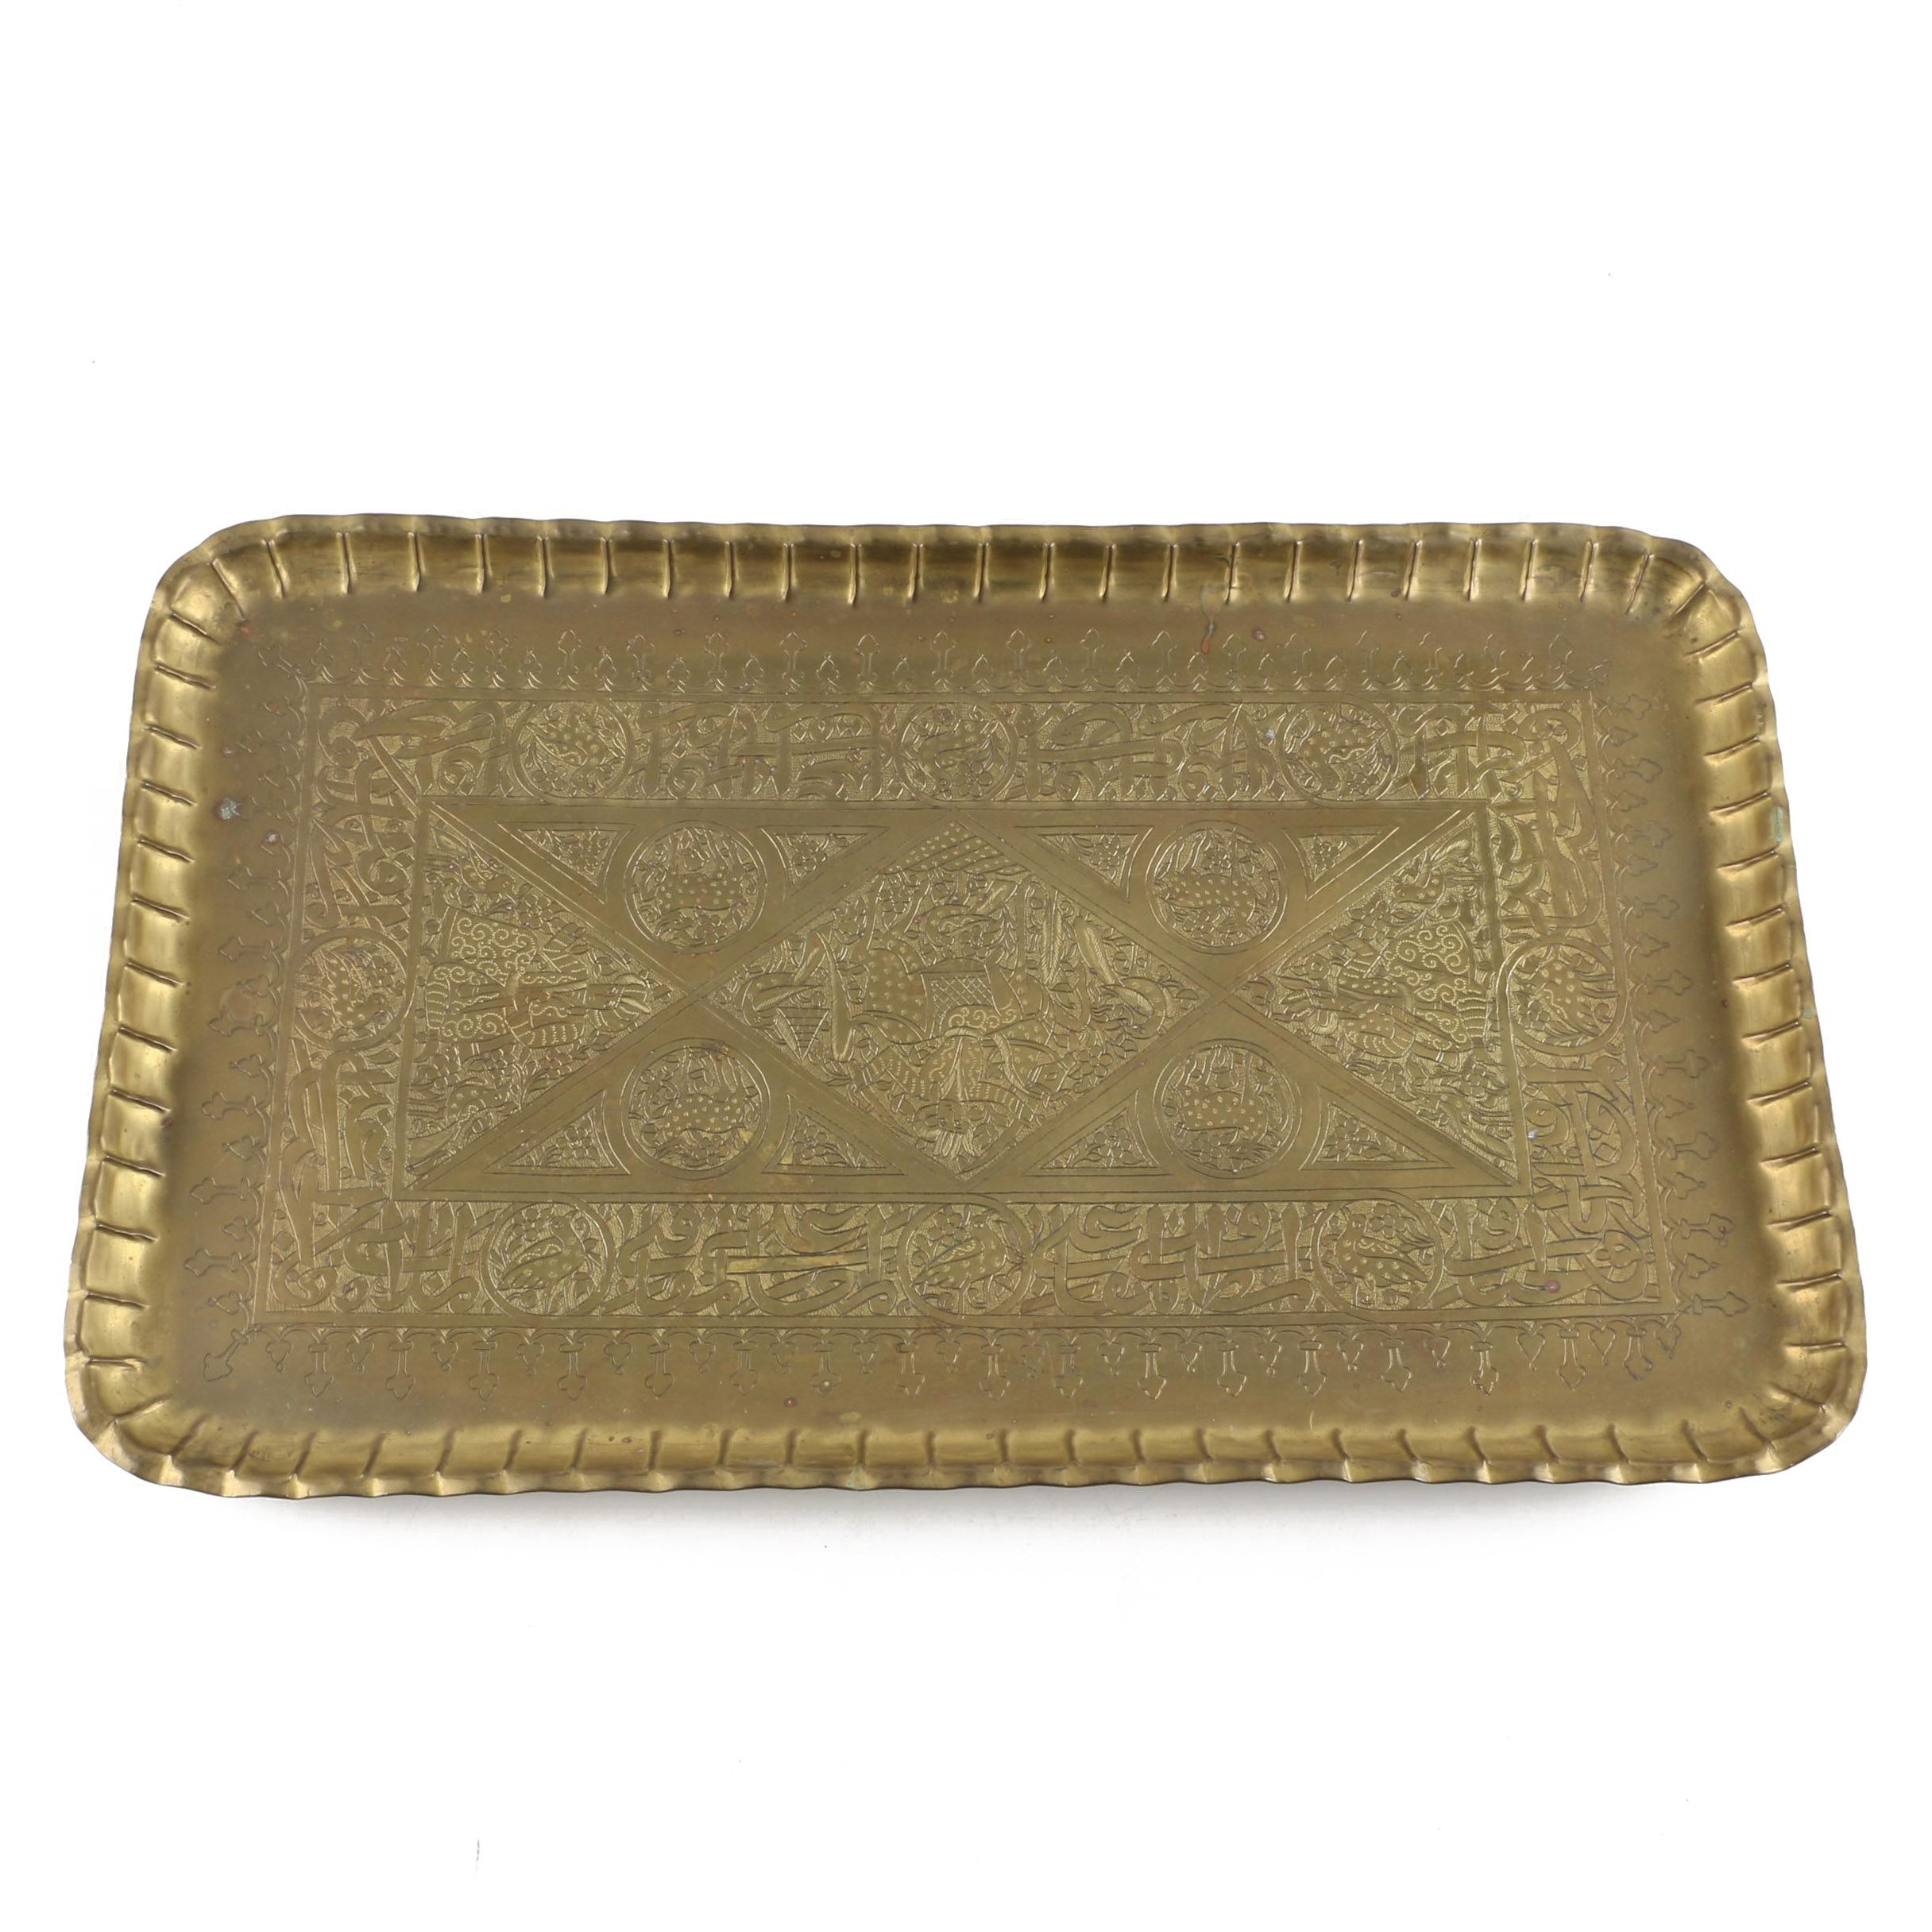 Middle Eastern Style Brass Serving Tray